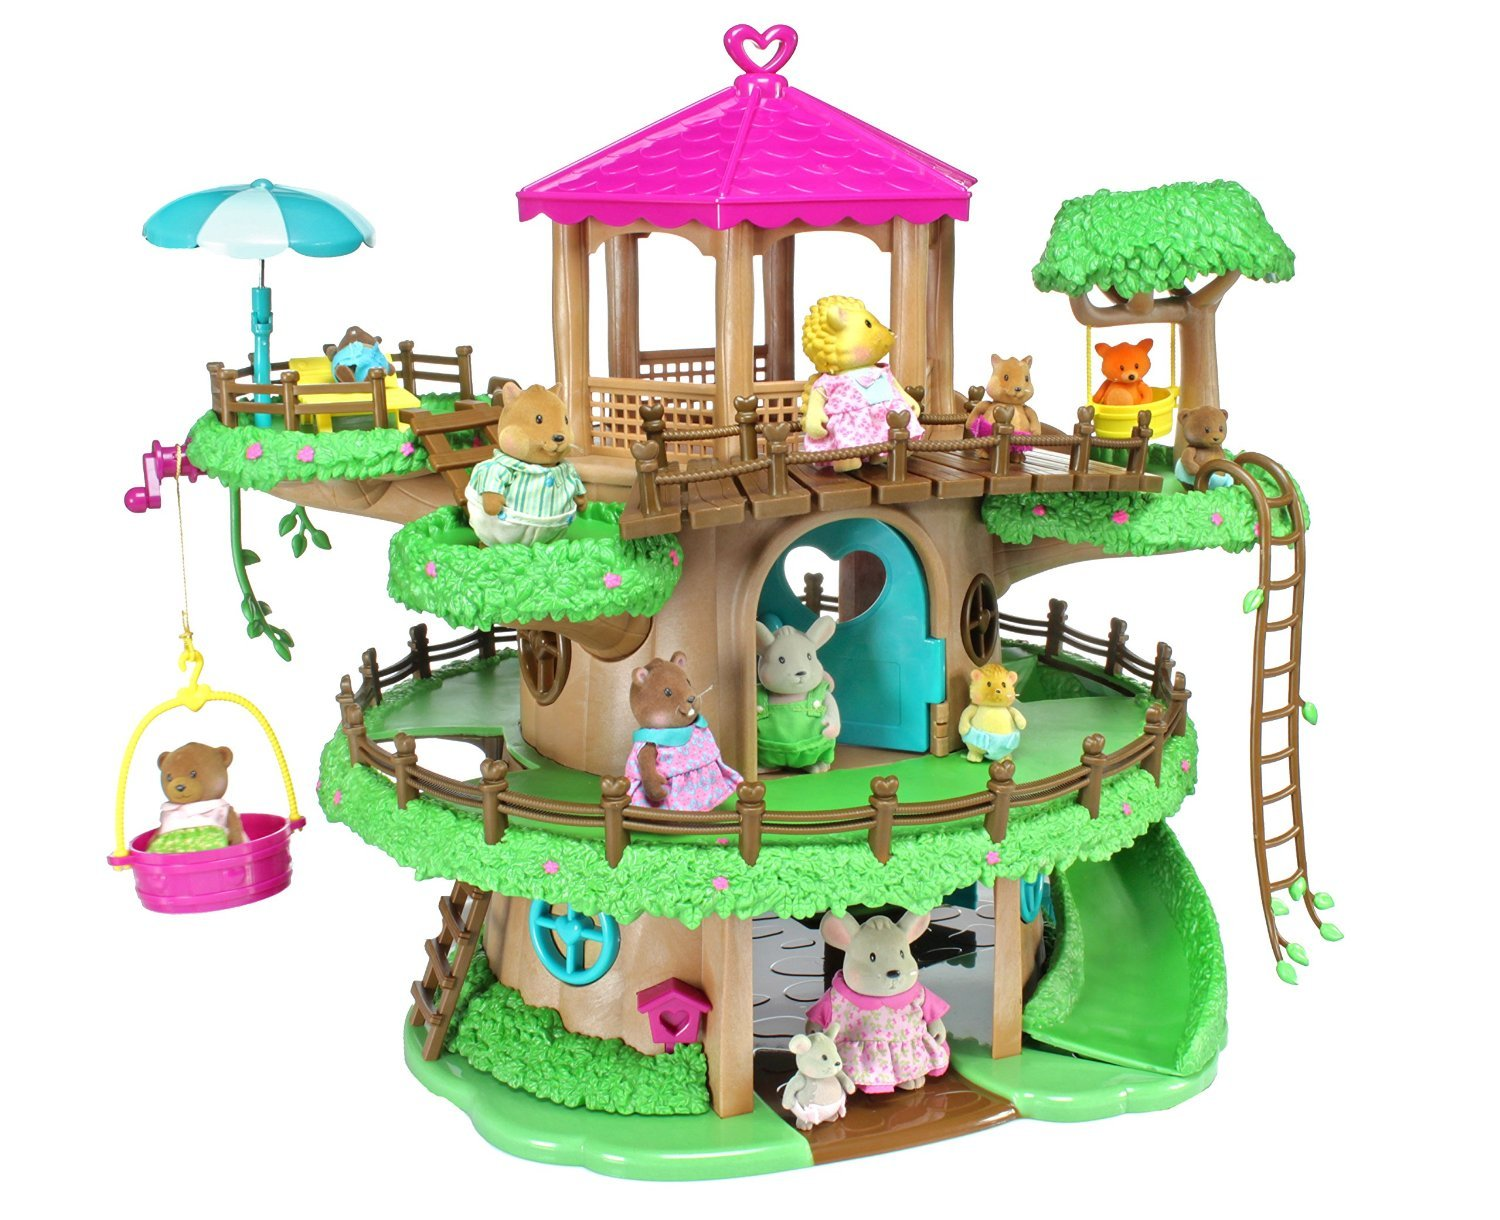 Li?l Woodzeez - Interactive Playset Accessories - Family Treehouse Playset